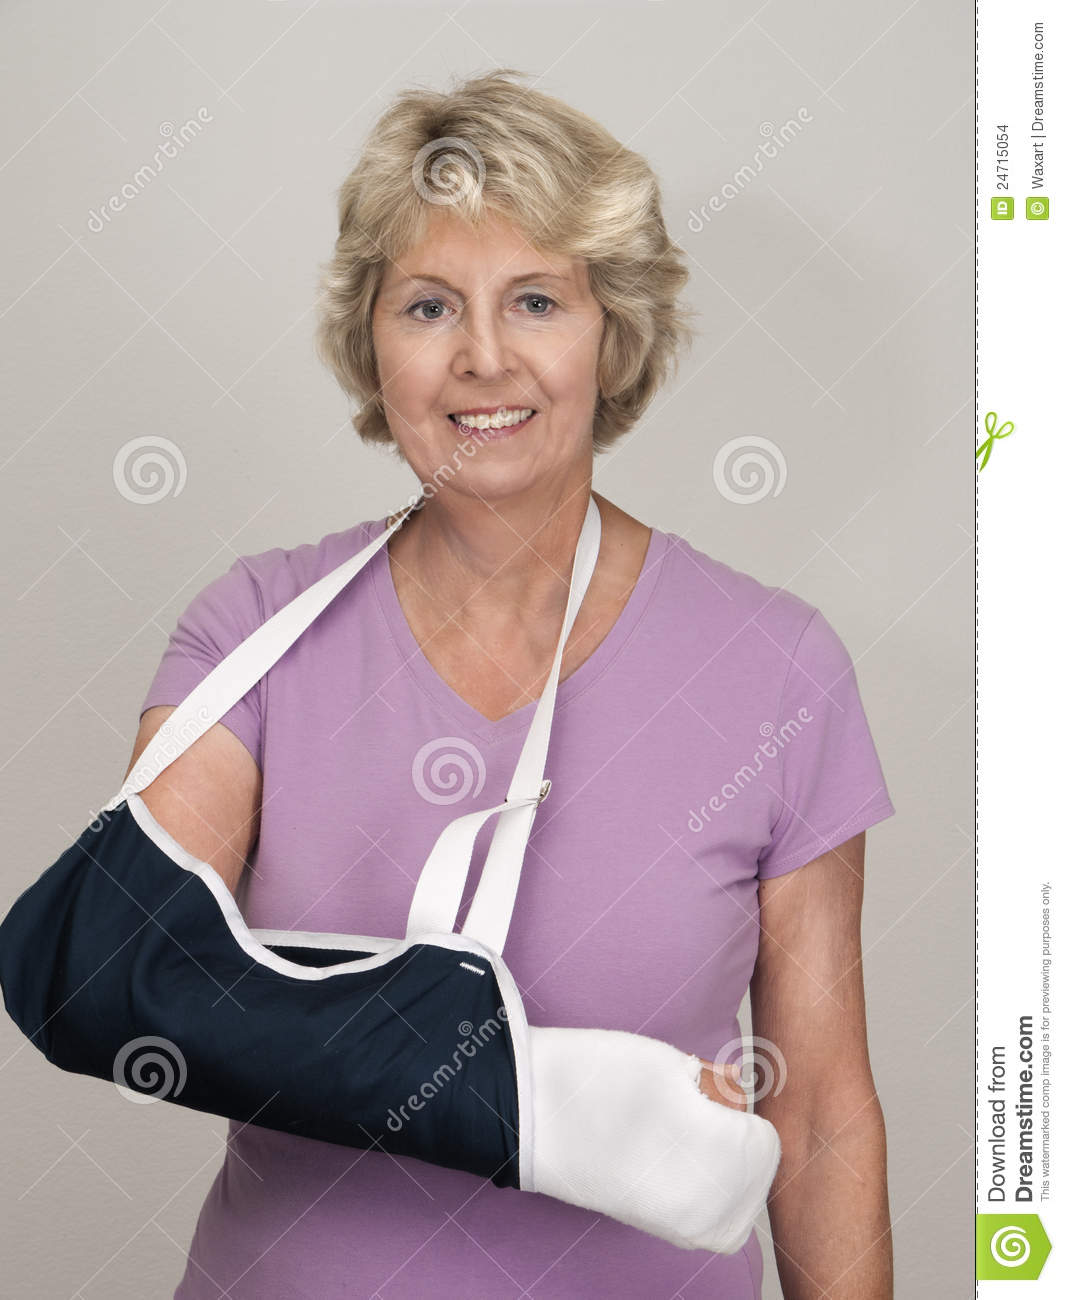 Senior Woman With Arm In Cast And Sling Stock Photo